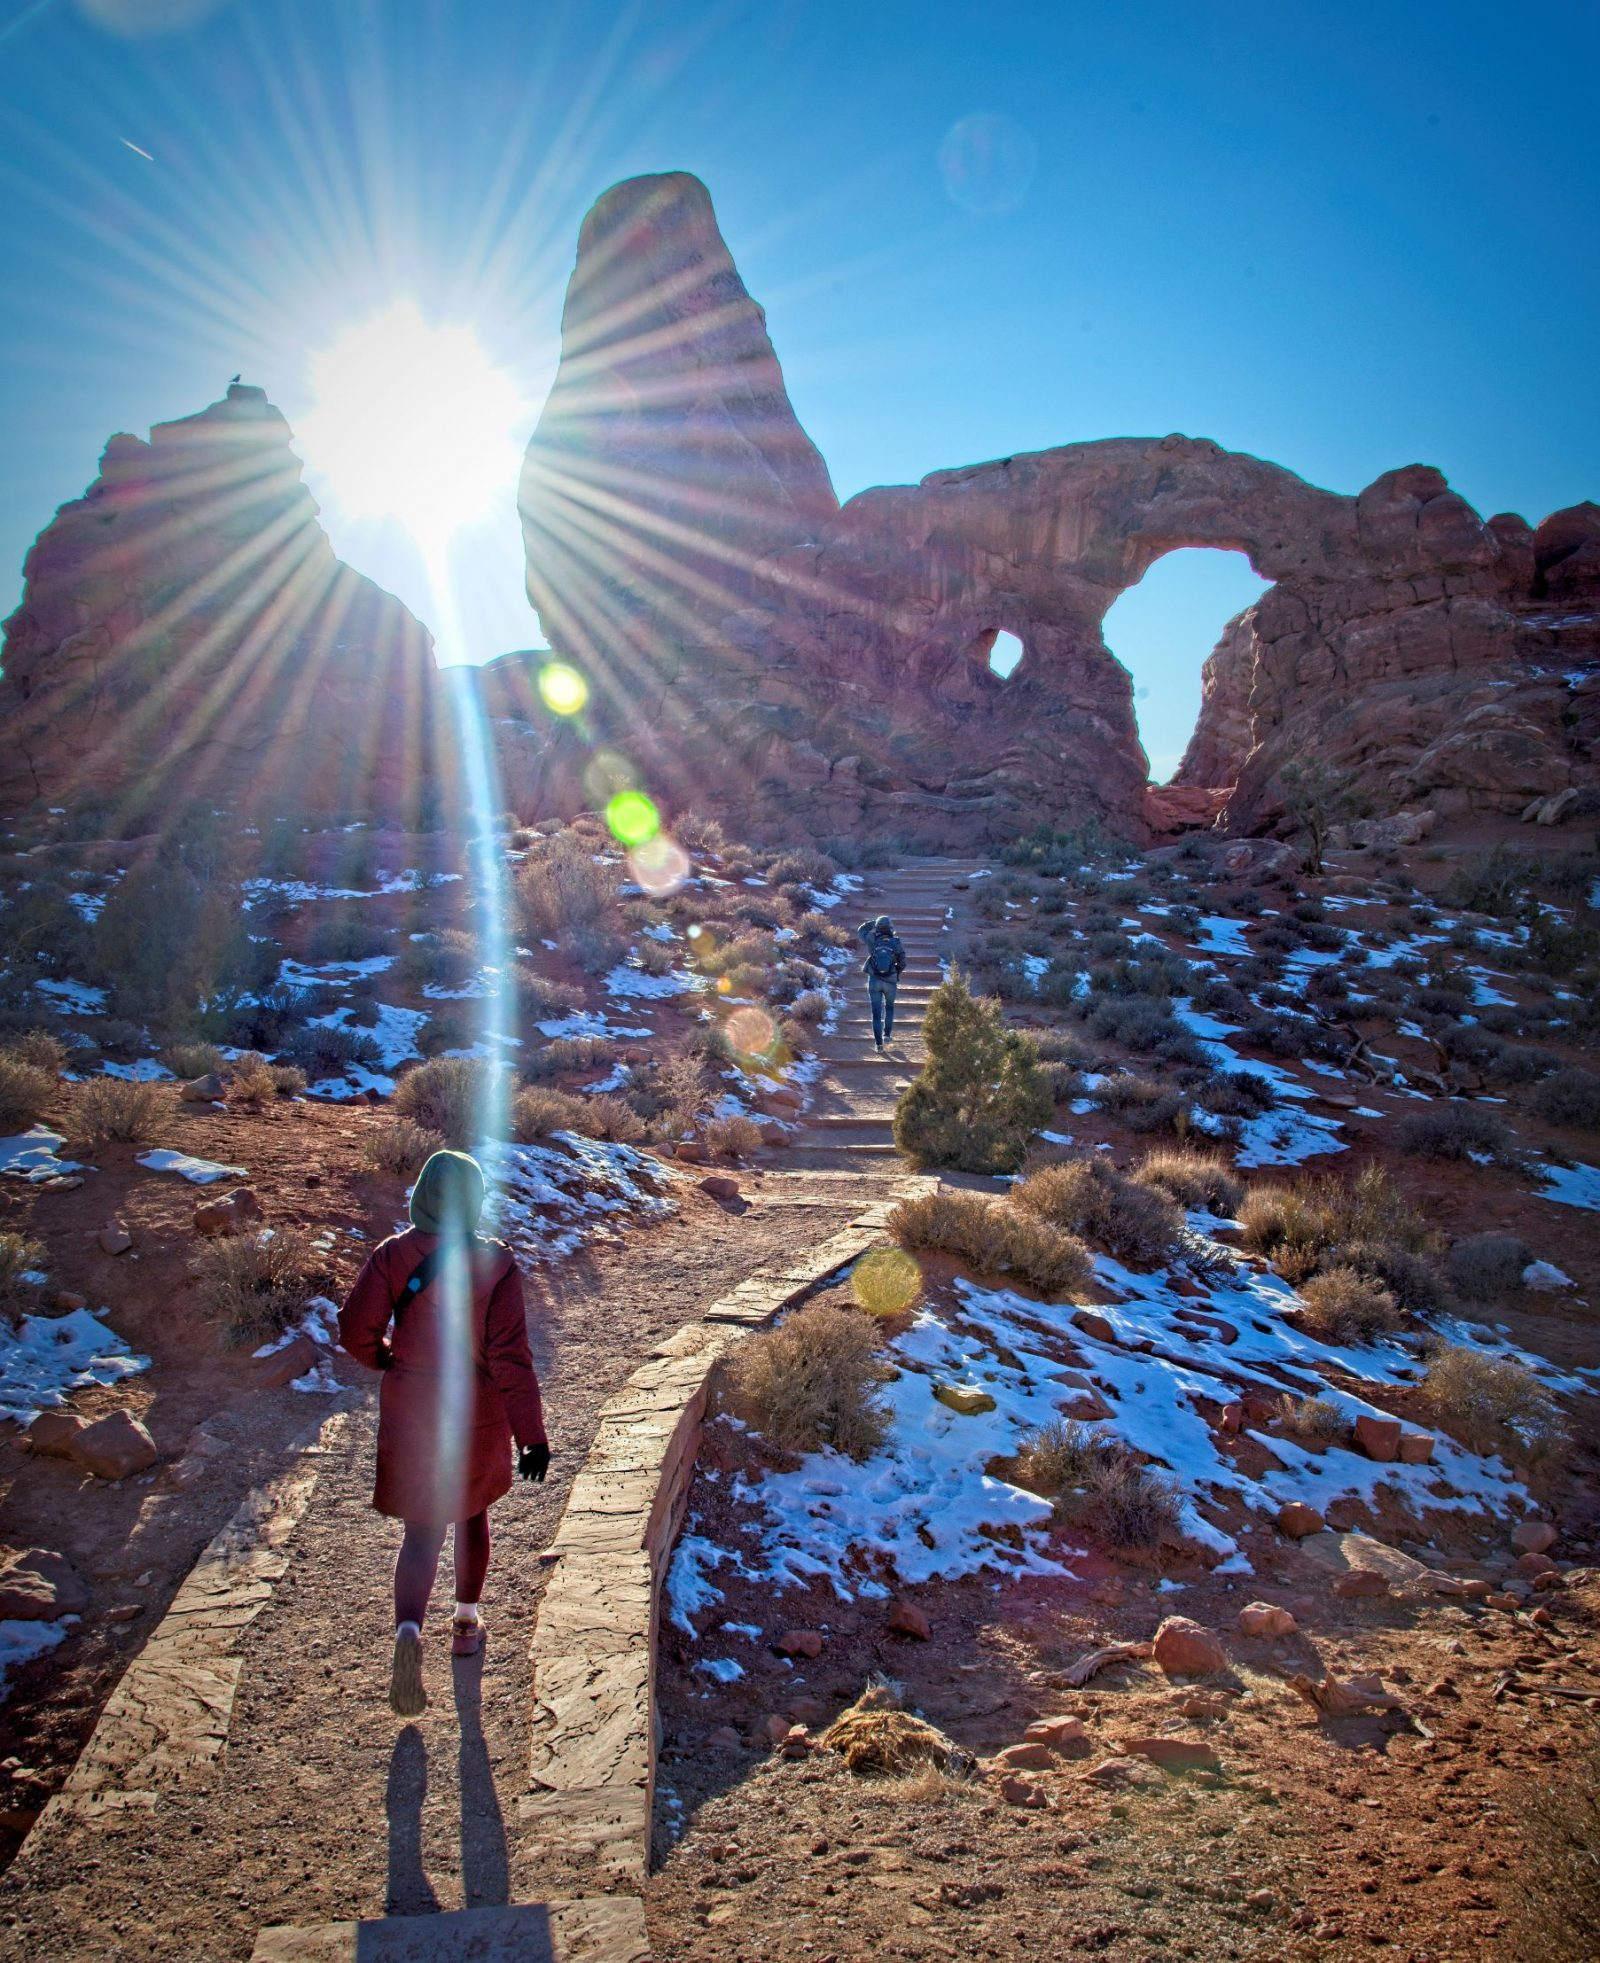 Exploring the Arches National Park